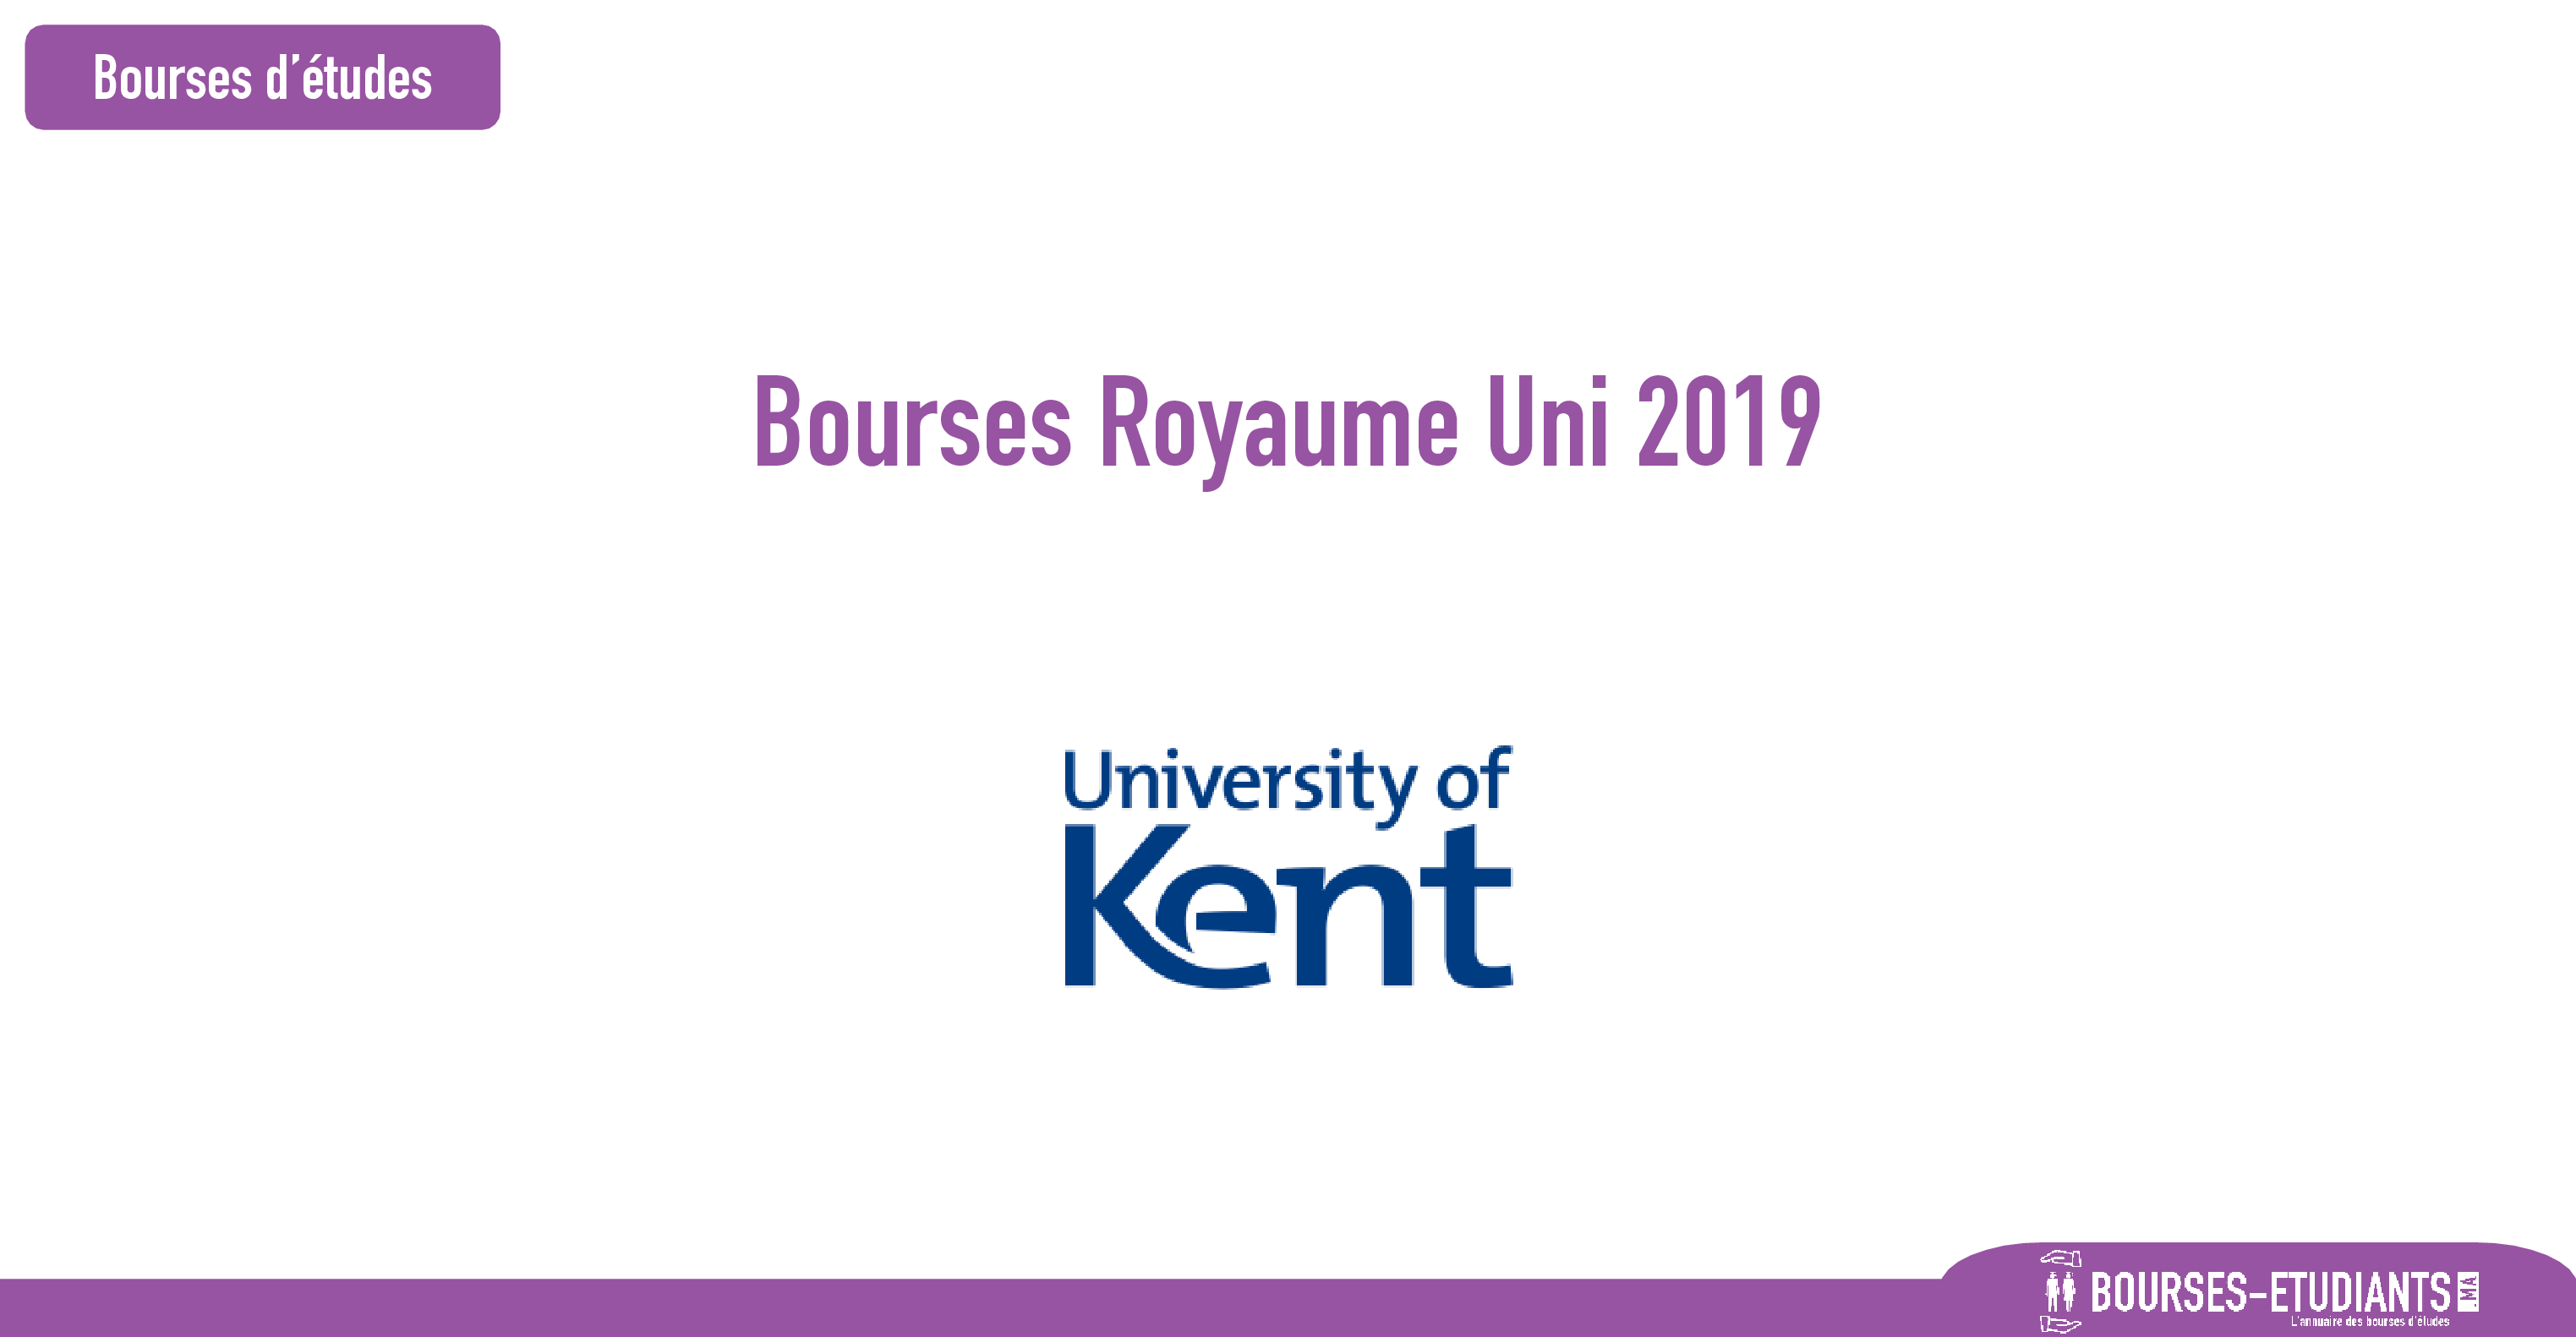 bourse university of kent